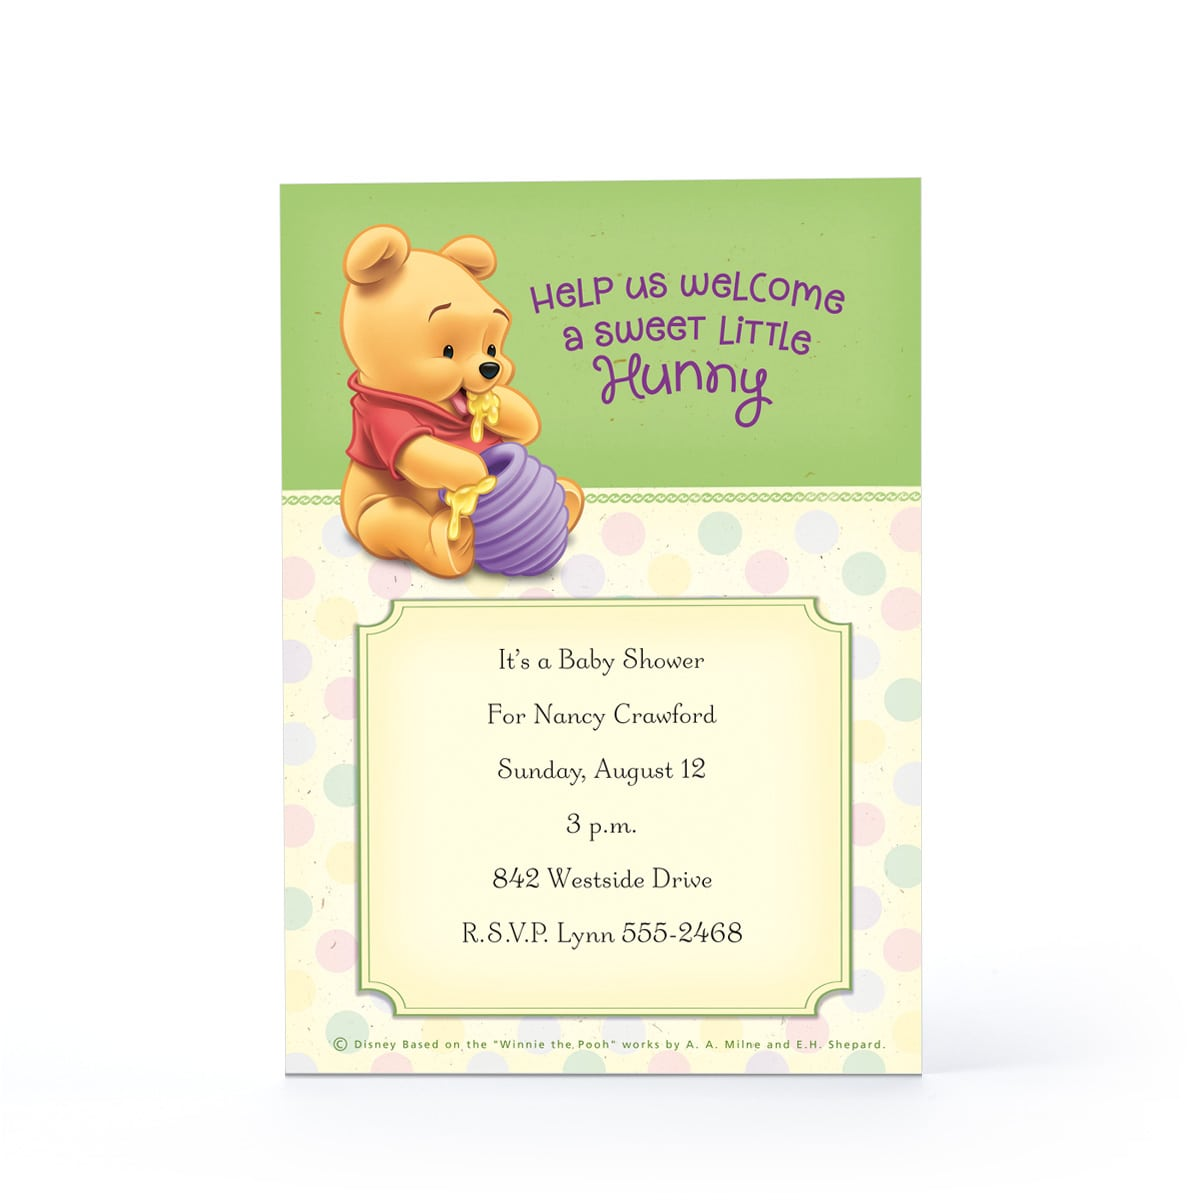 Winnie The Pooh Baby Shower Invitation Templates